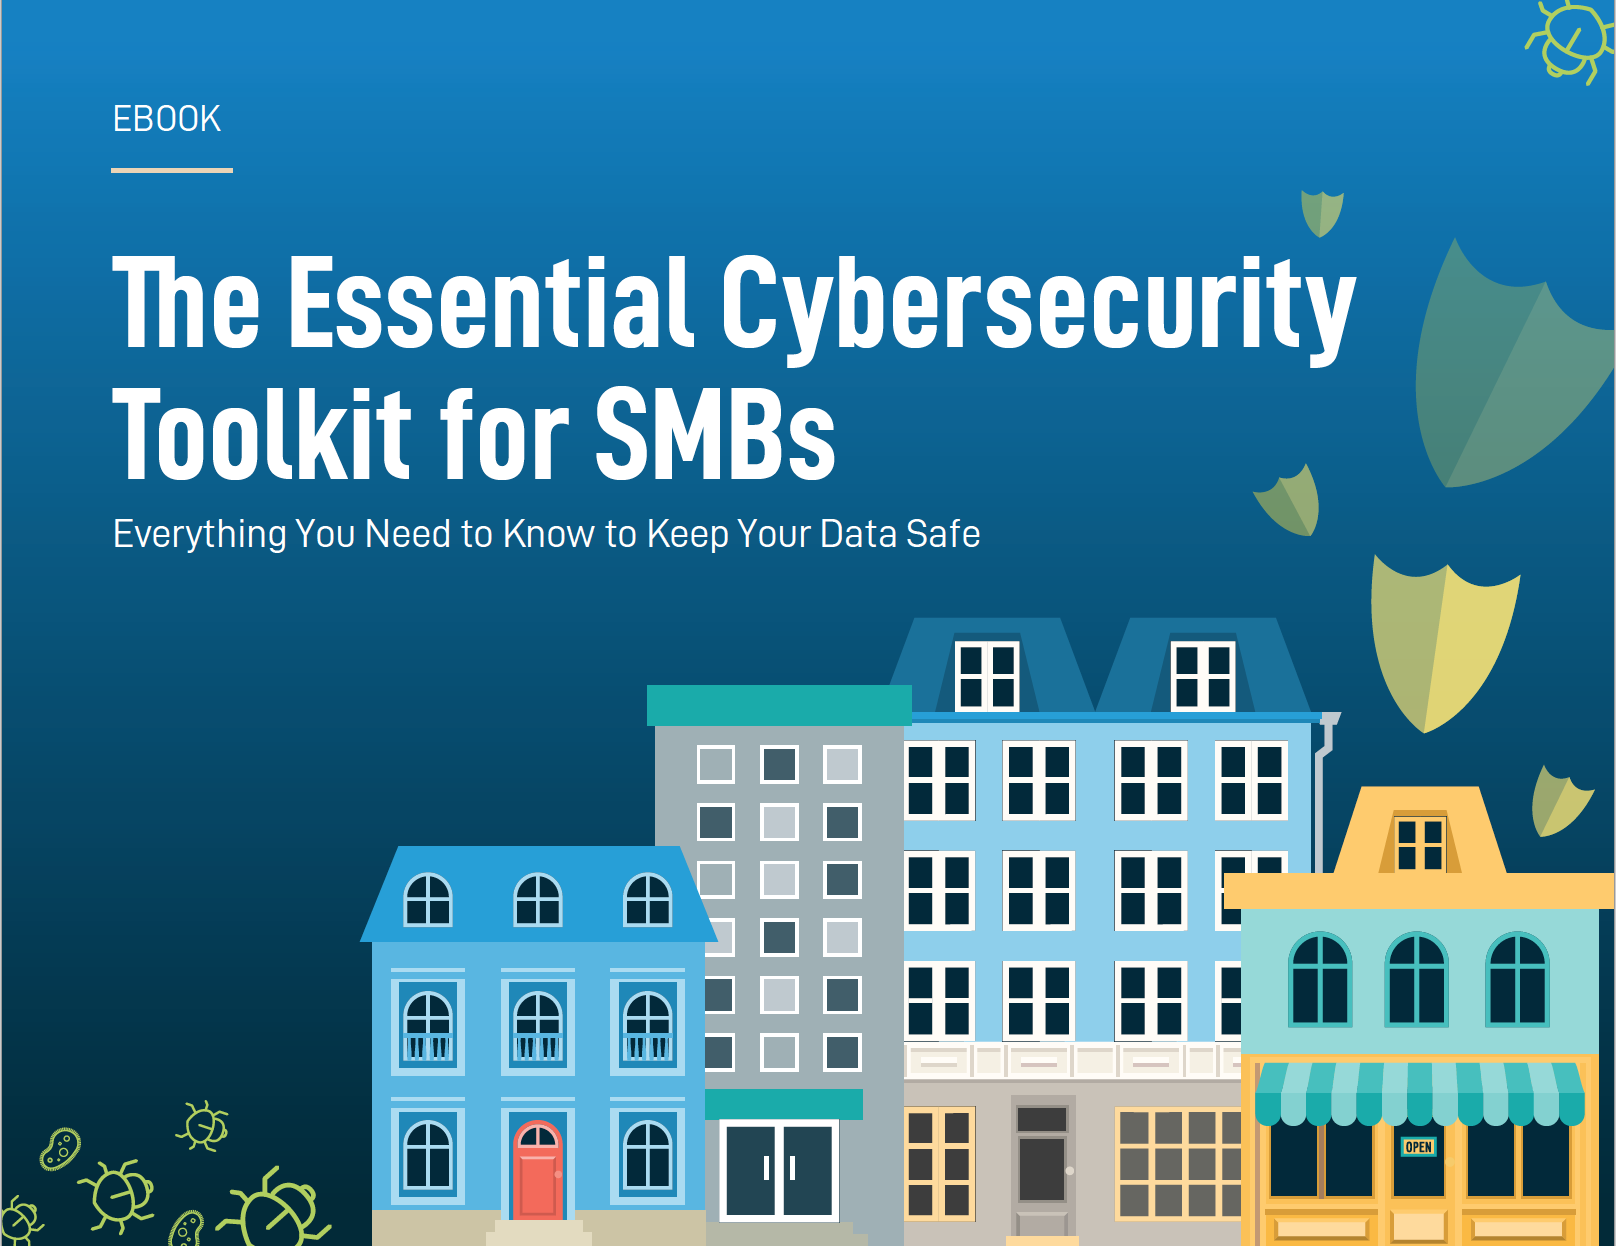 Your Essential Cybersecurity Toolkit,